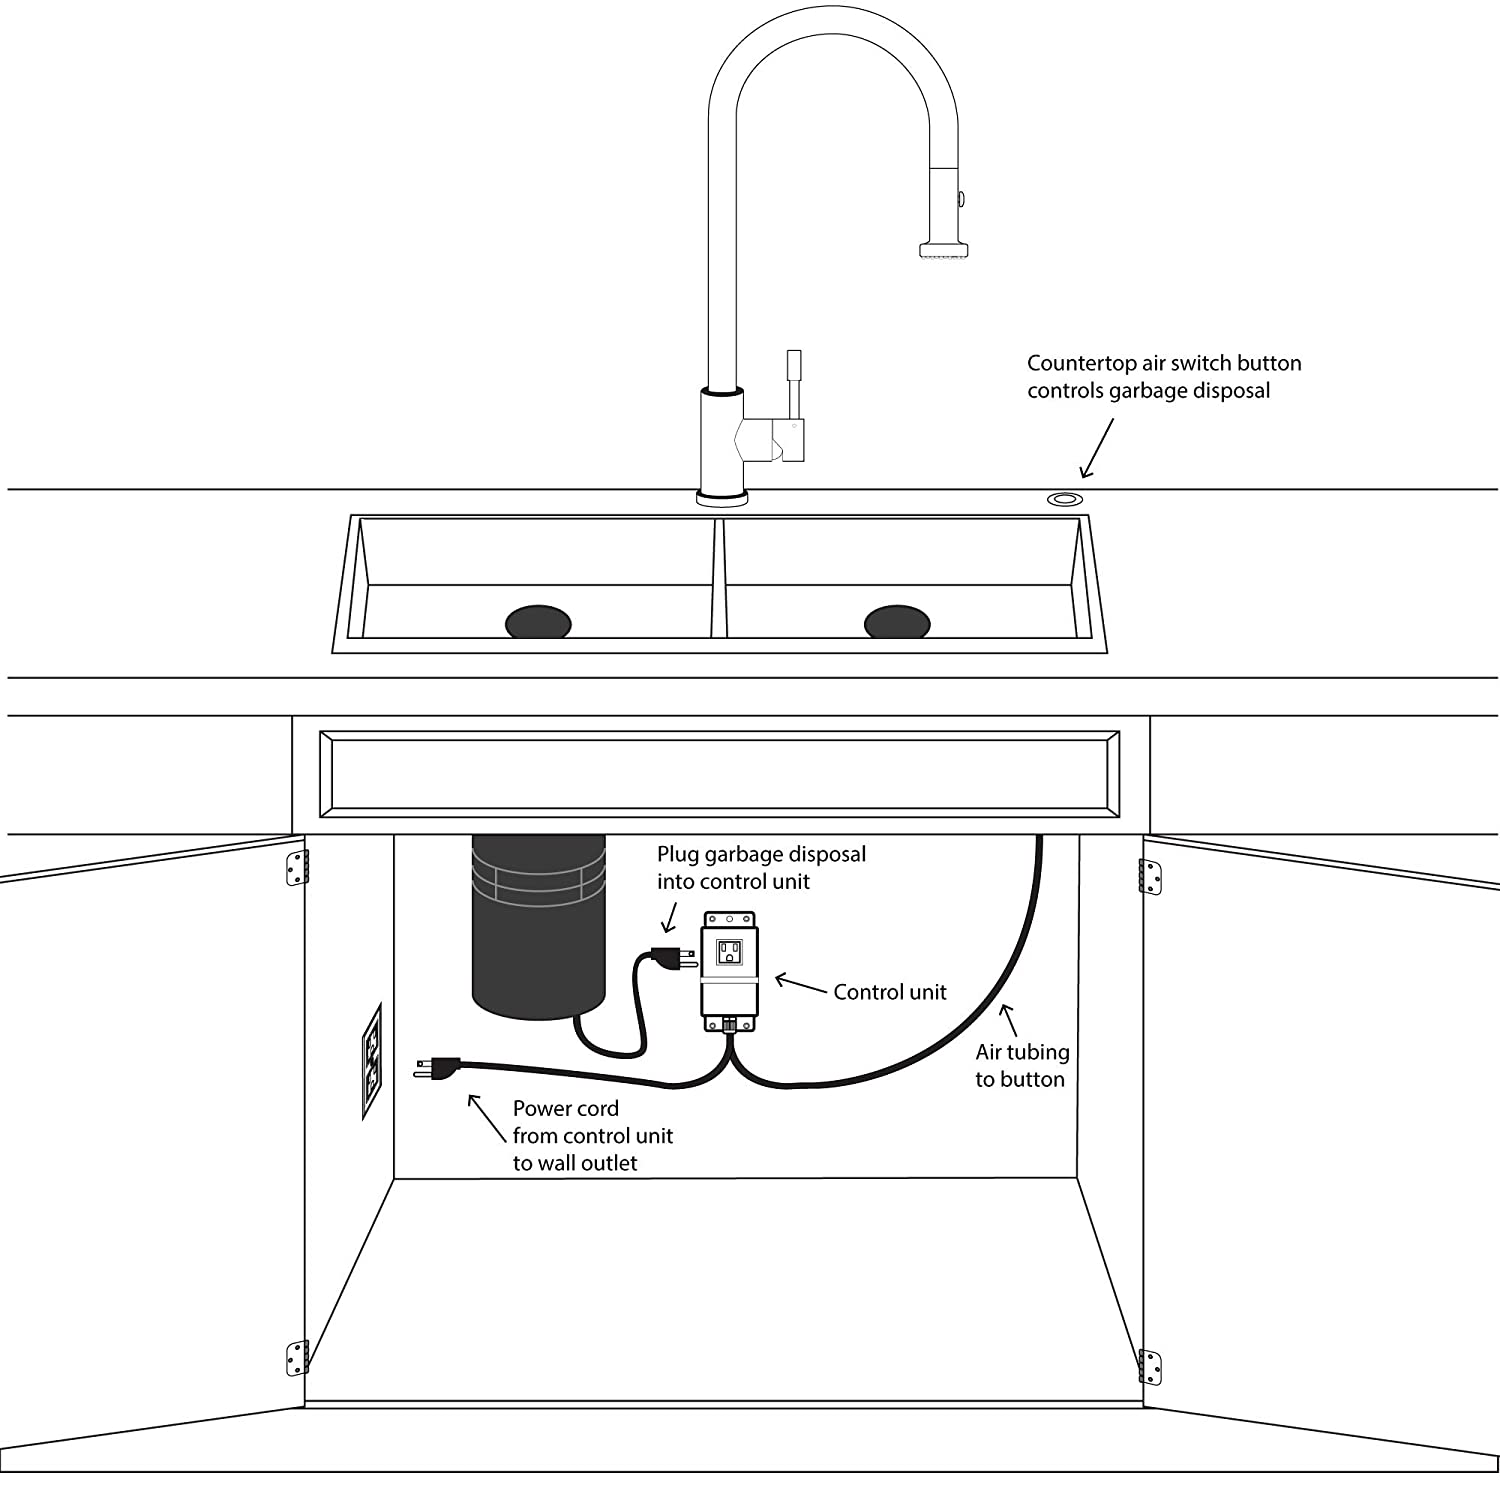 719zcQJhLlL._SL1500_ gts ga7 power 110 vac single outlet sink garbage disposal air wiring diagram for dishwasher and garbage disposal at bayanpartner.co